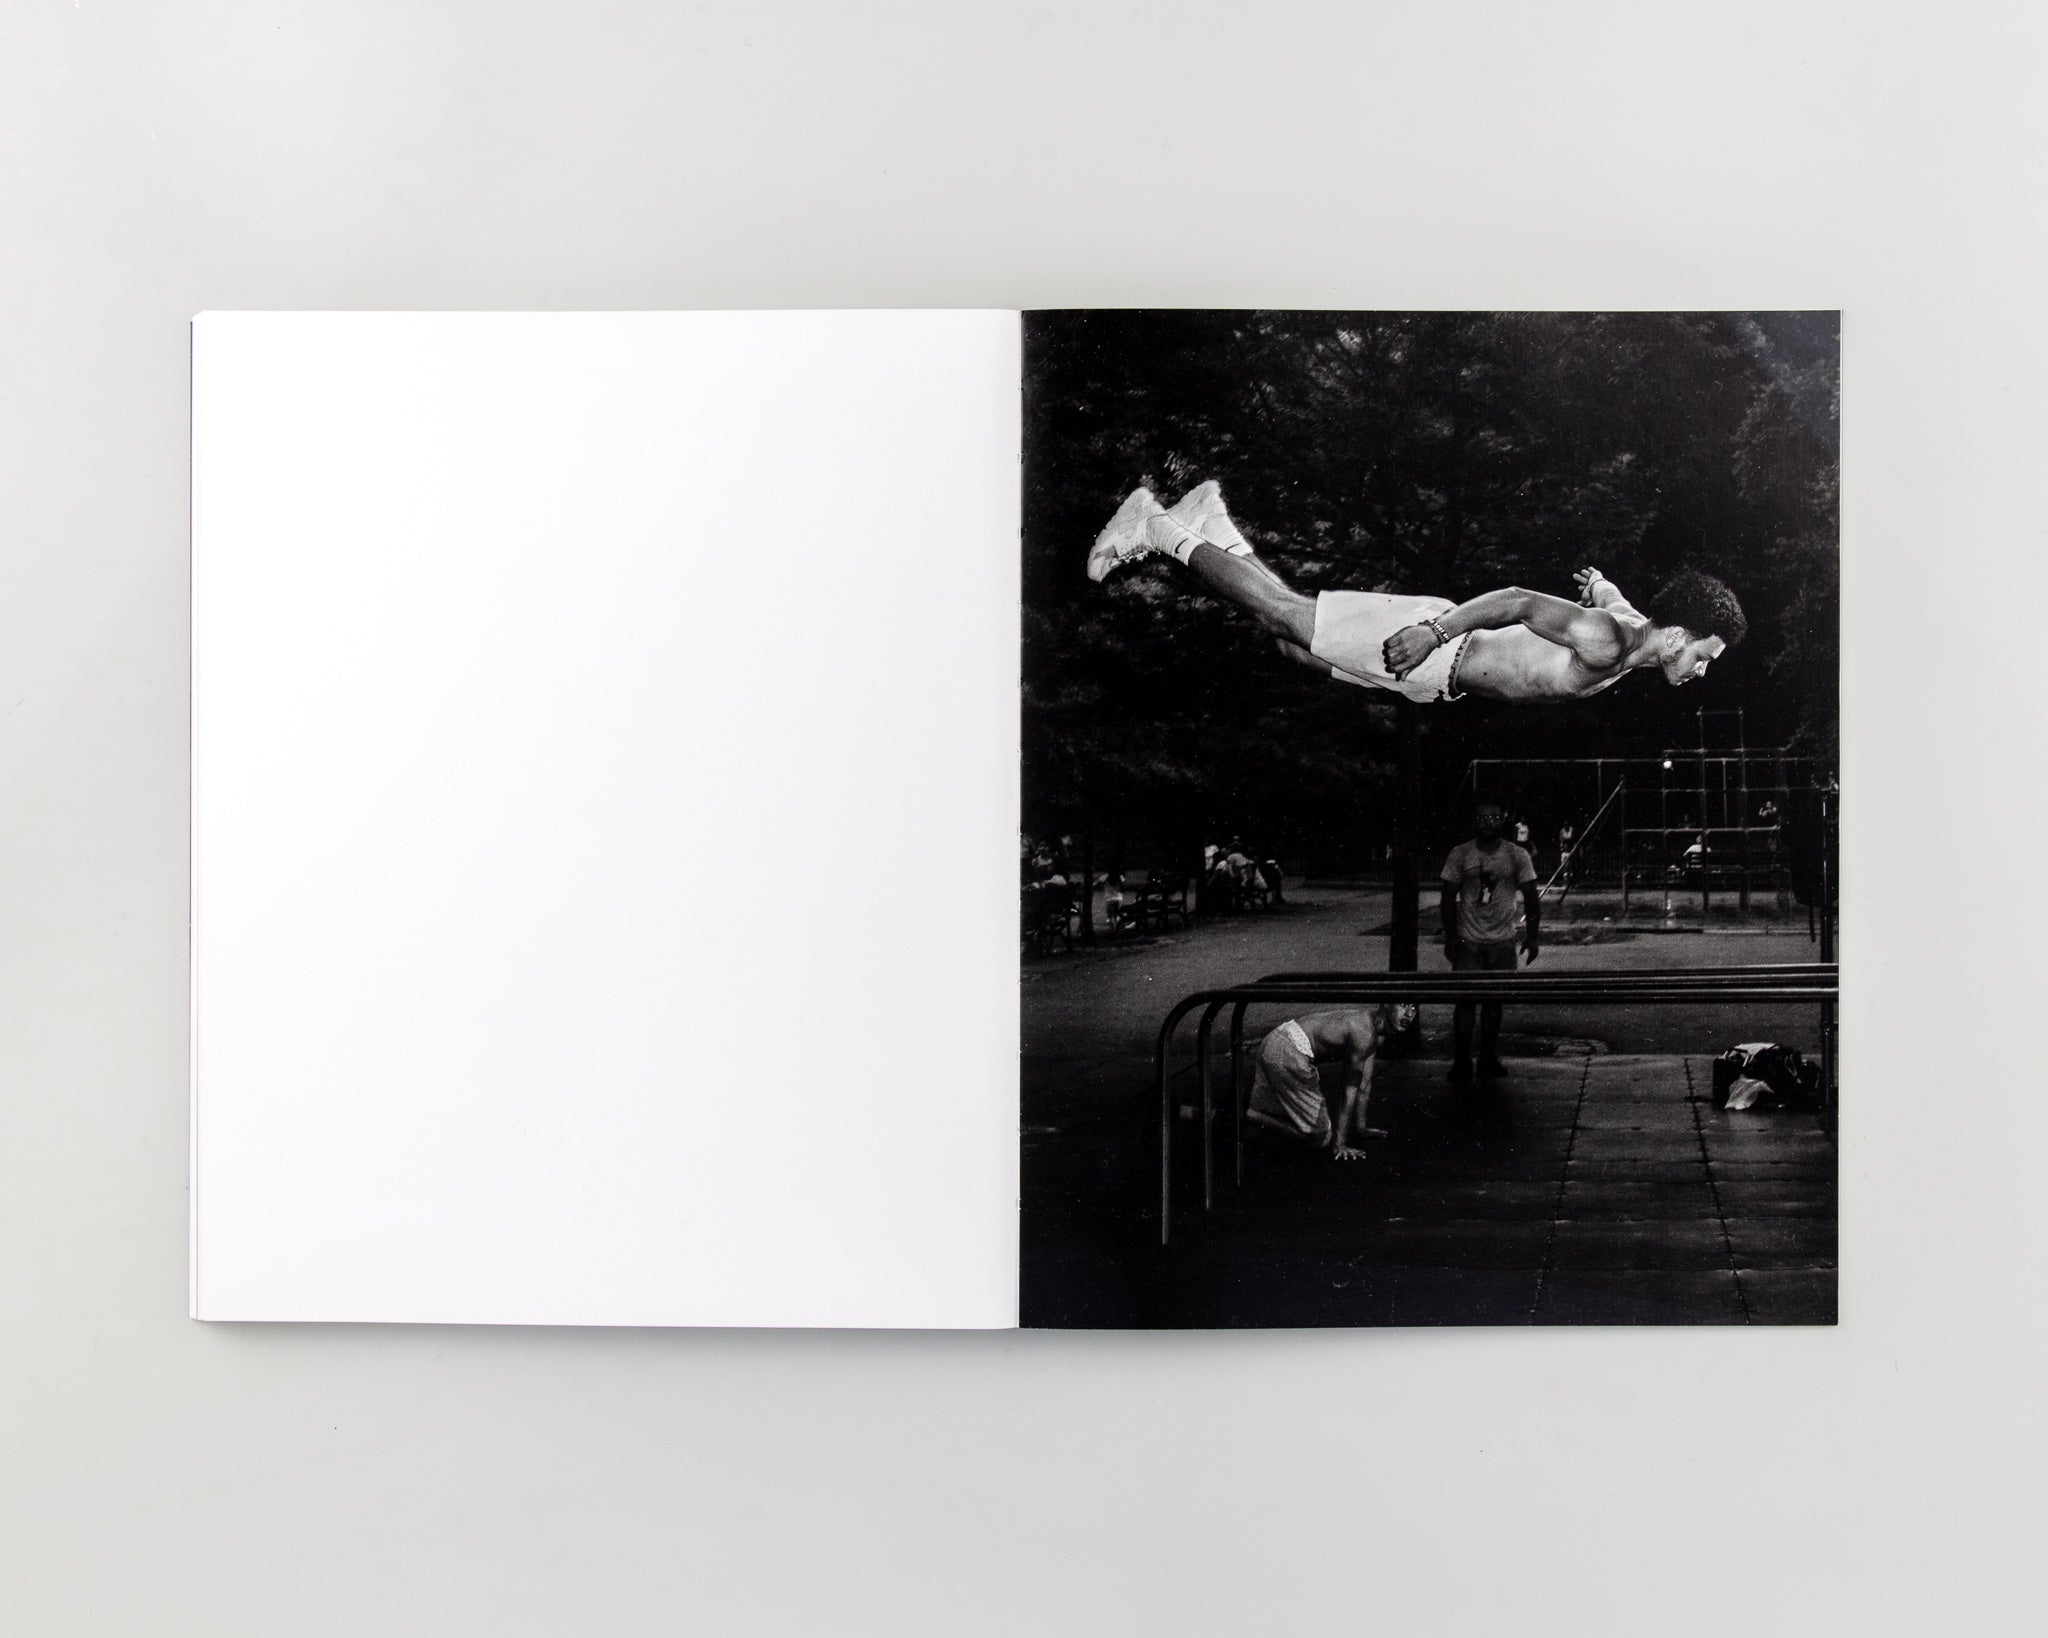 Dyckman Haze by Adam Pape (MACK Books, 2019)